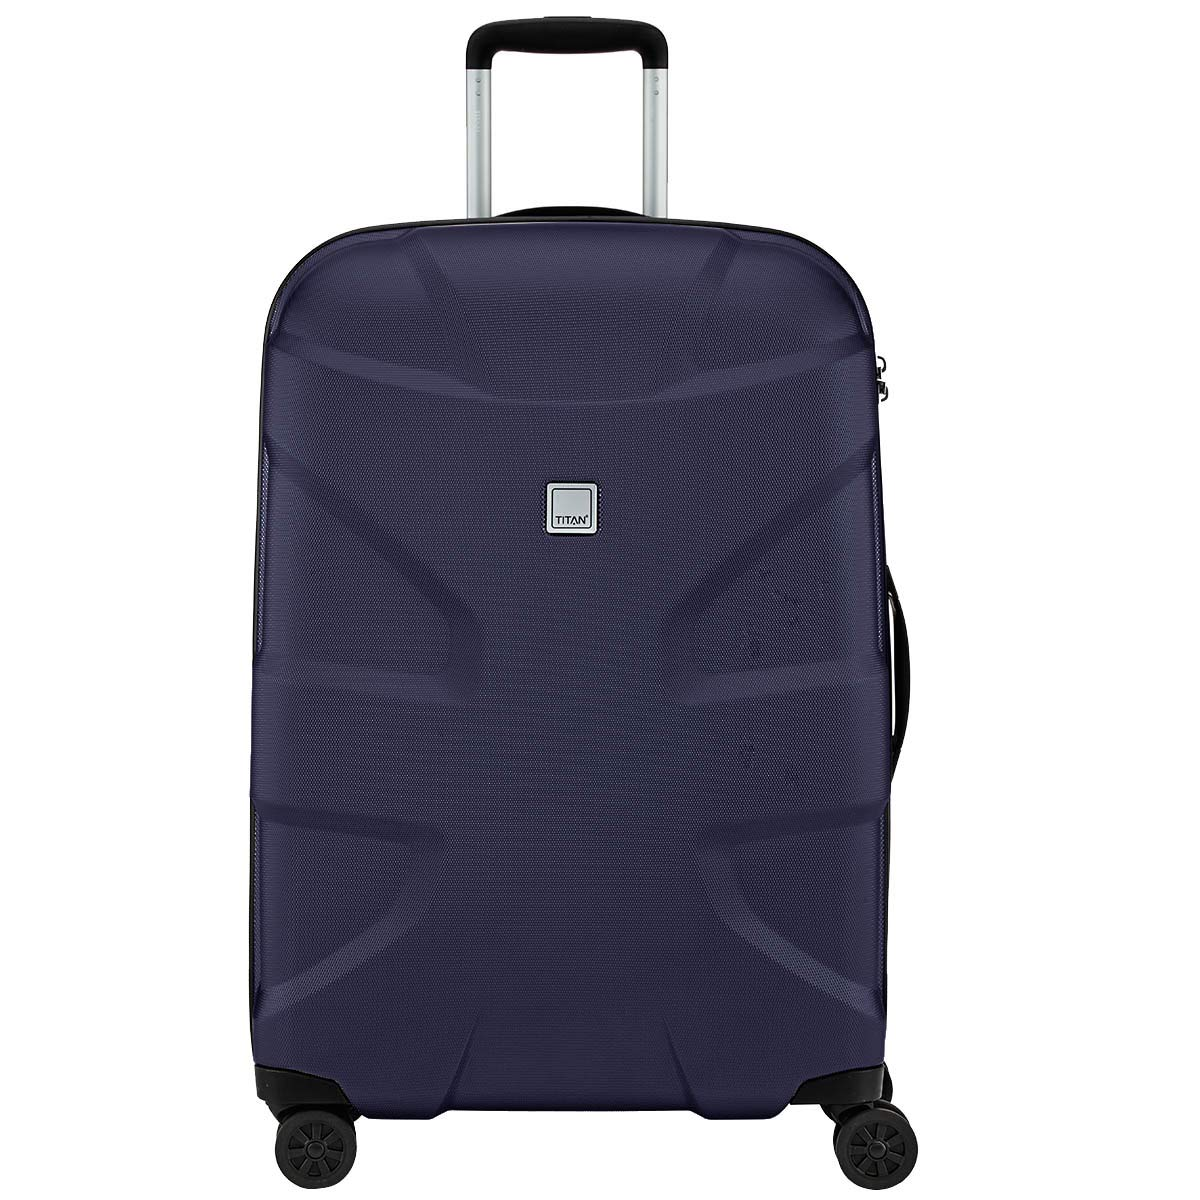 4 X2 Valise 71 CmBagages Titan Navy Roues 7vI6ybYfg